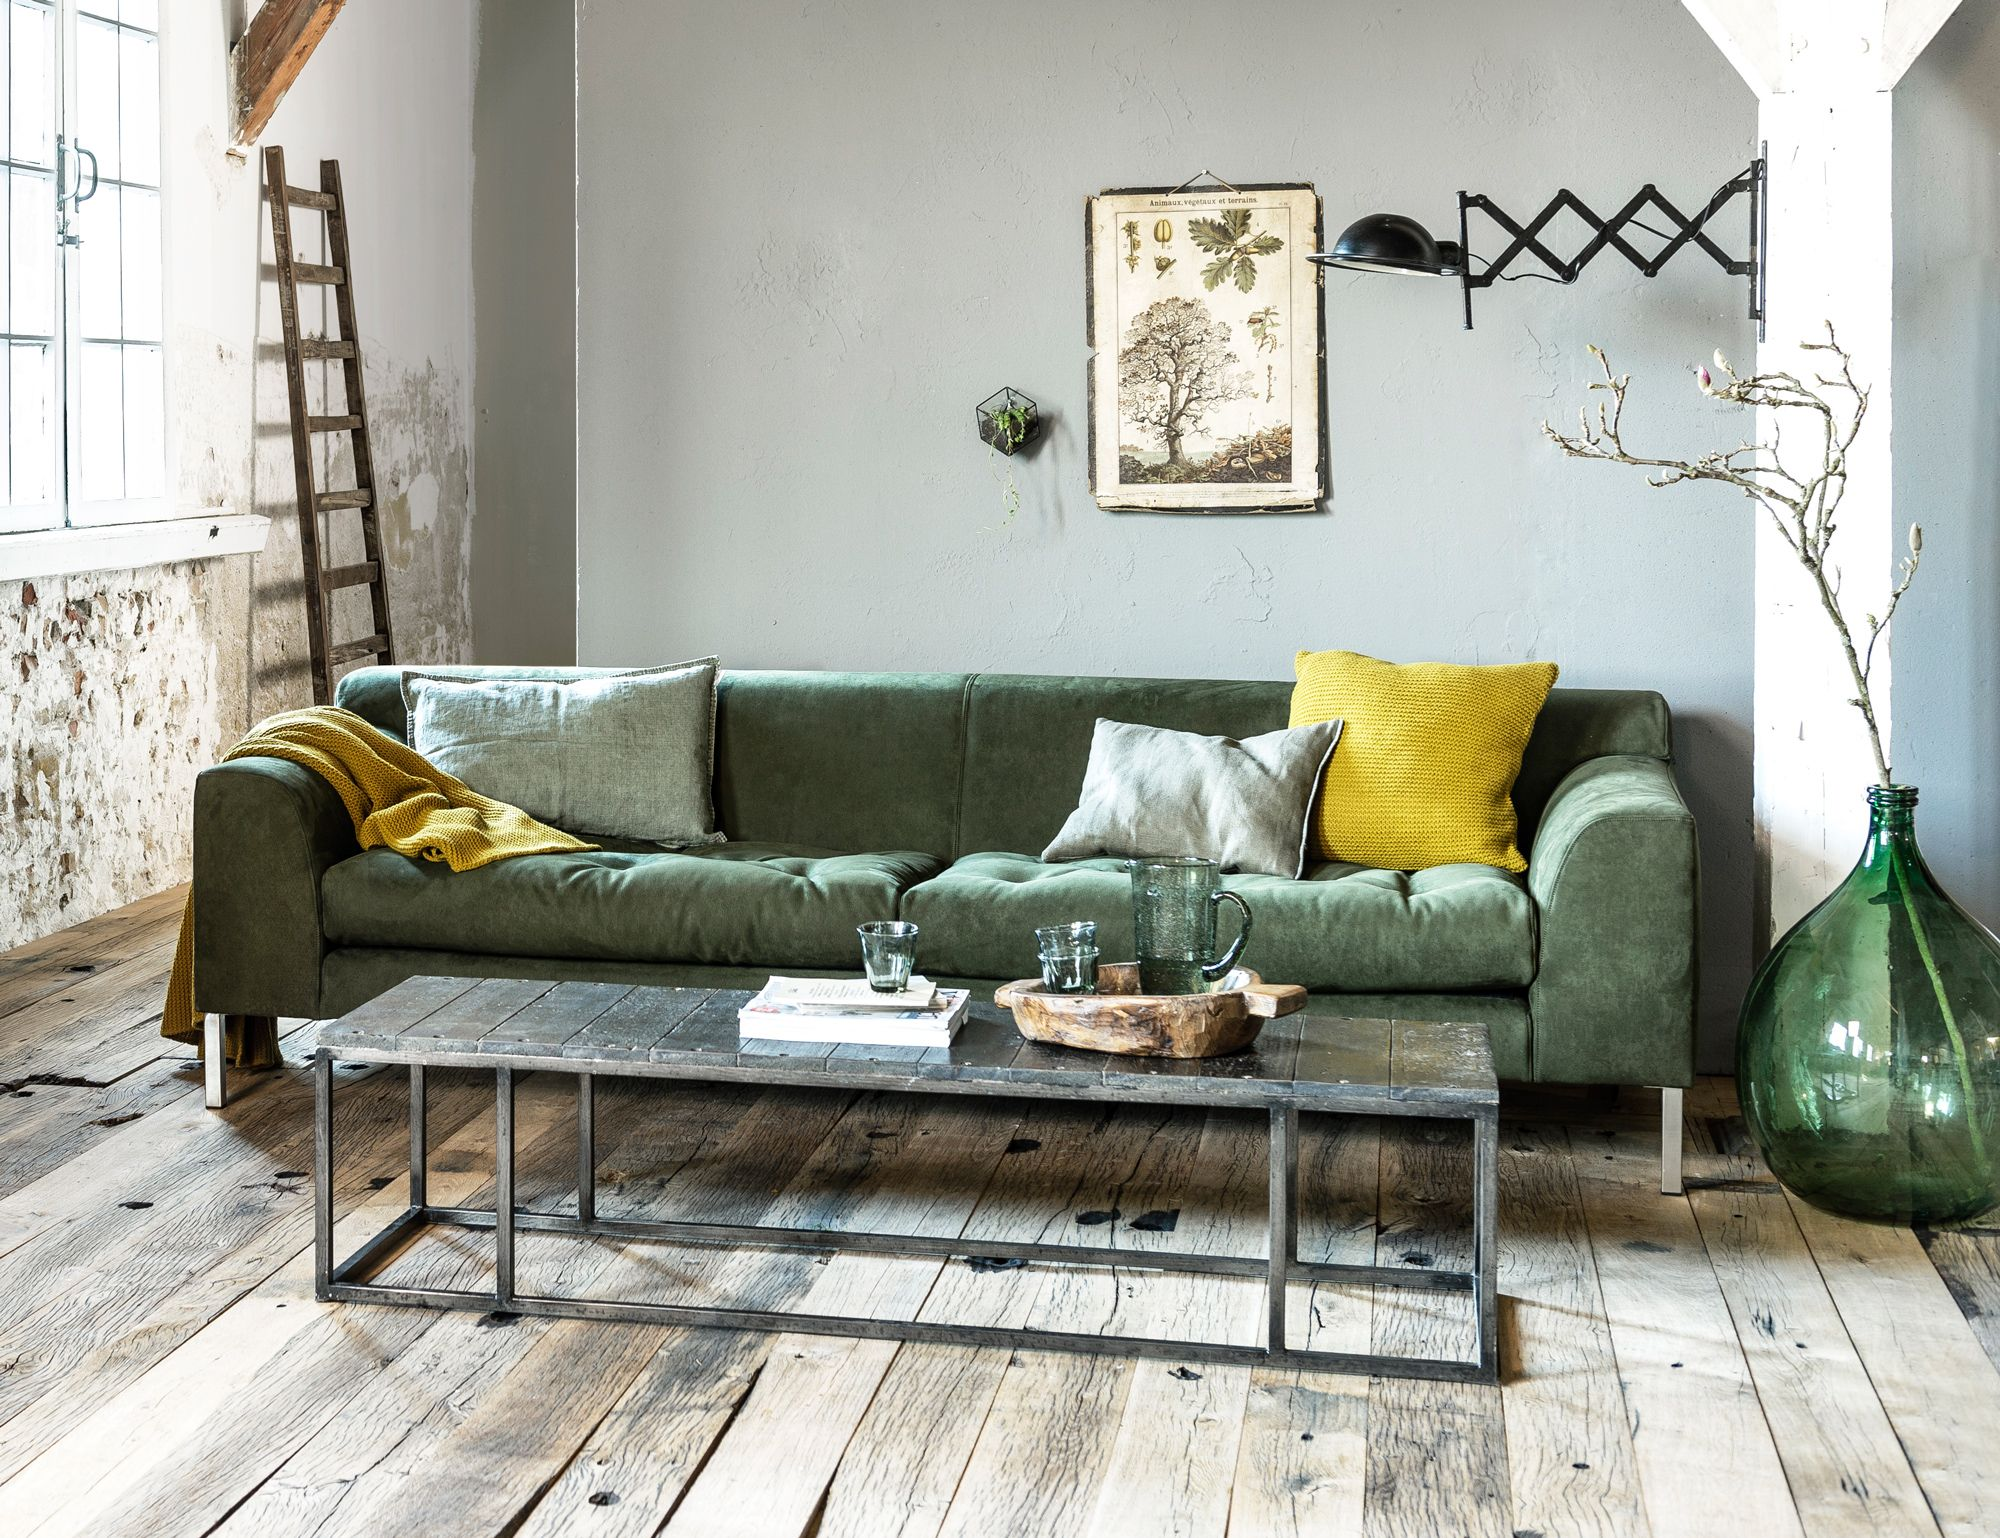 Industrial living room with pops of green and yellow and a wooden